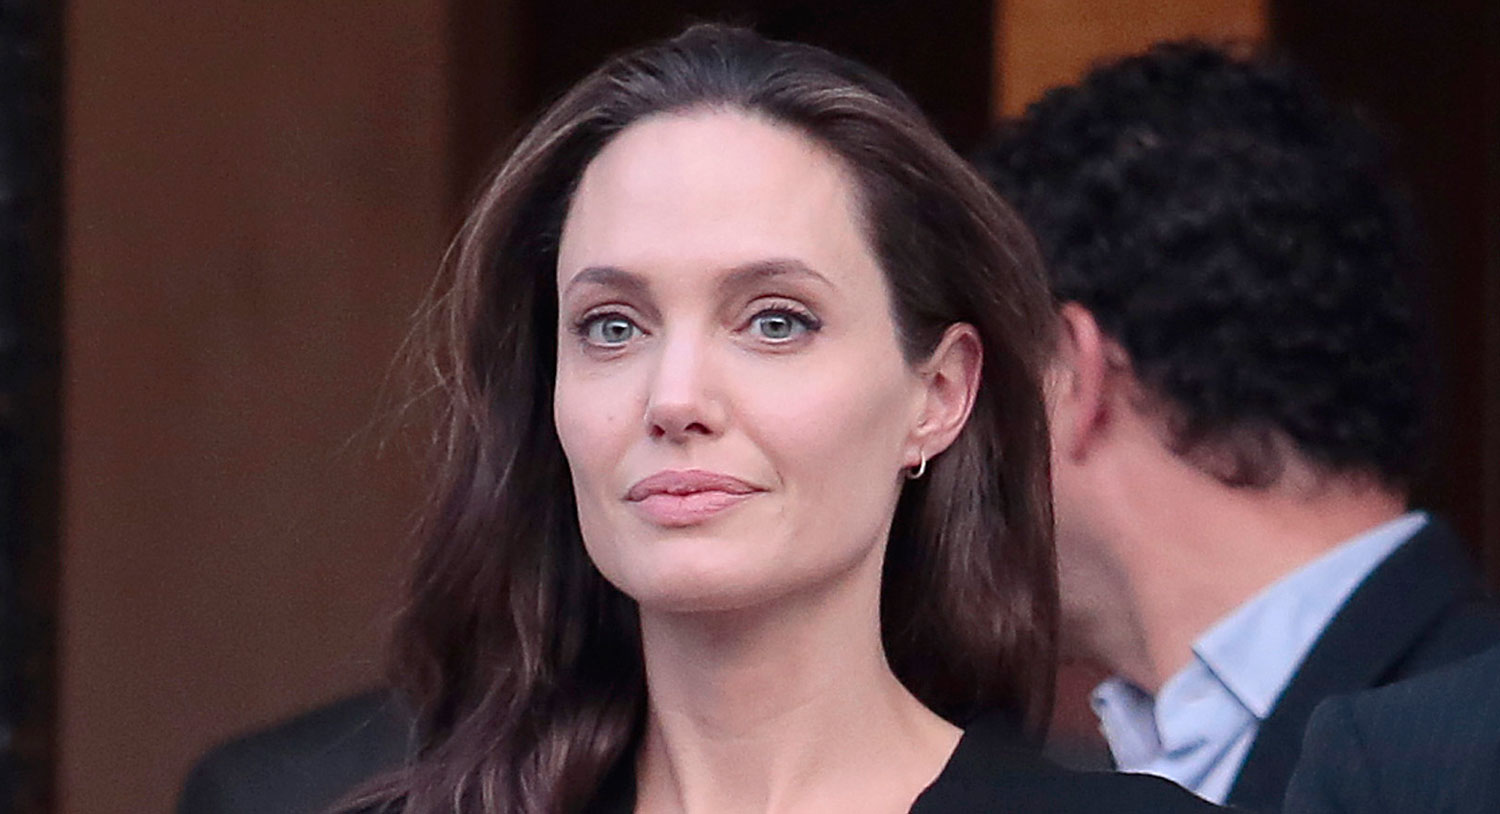 Angelina Jolie News: Angelina Jolie News